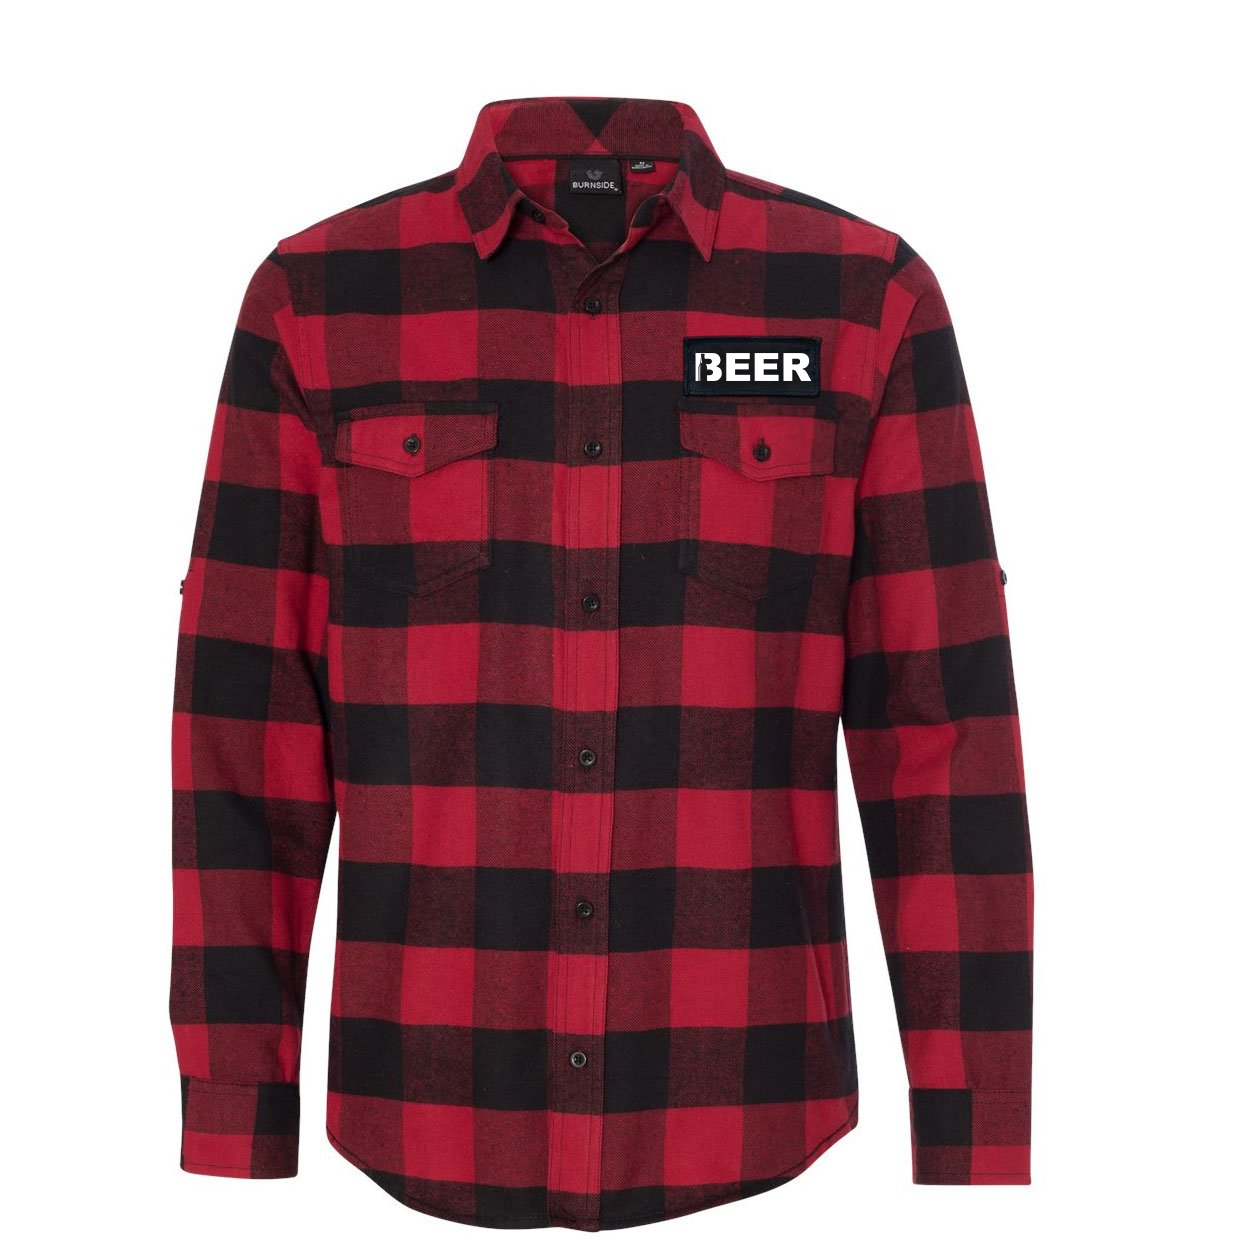 Beer Bottle Logo Classic Unisex Long Sleeve Woven Patch Flannel Shirt Red/Black Buffalo (White Logo)